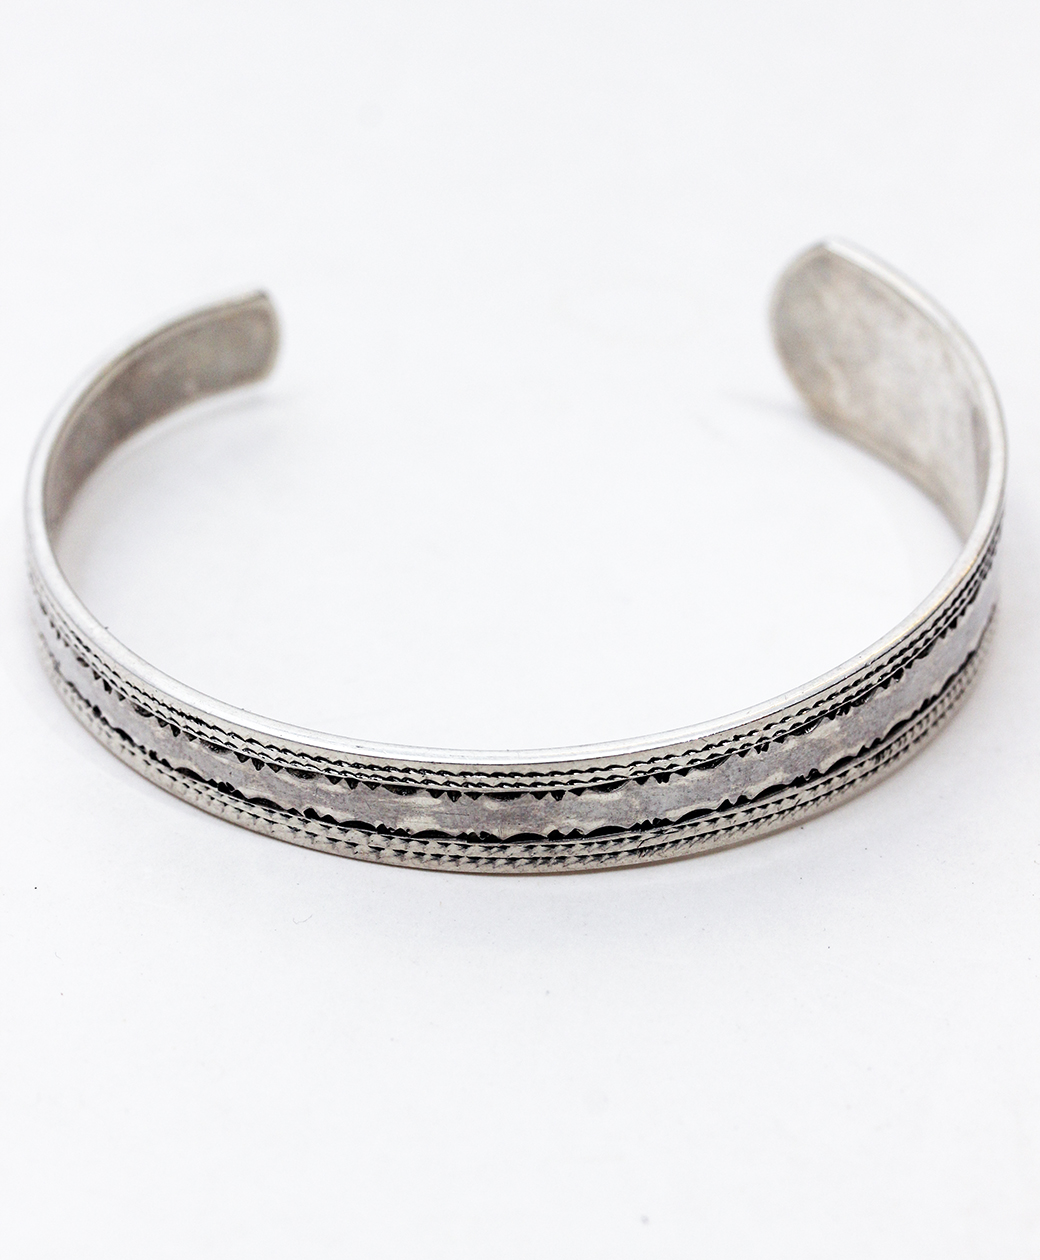 TUAREG SILVER JEWELRY BANGLE(B)